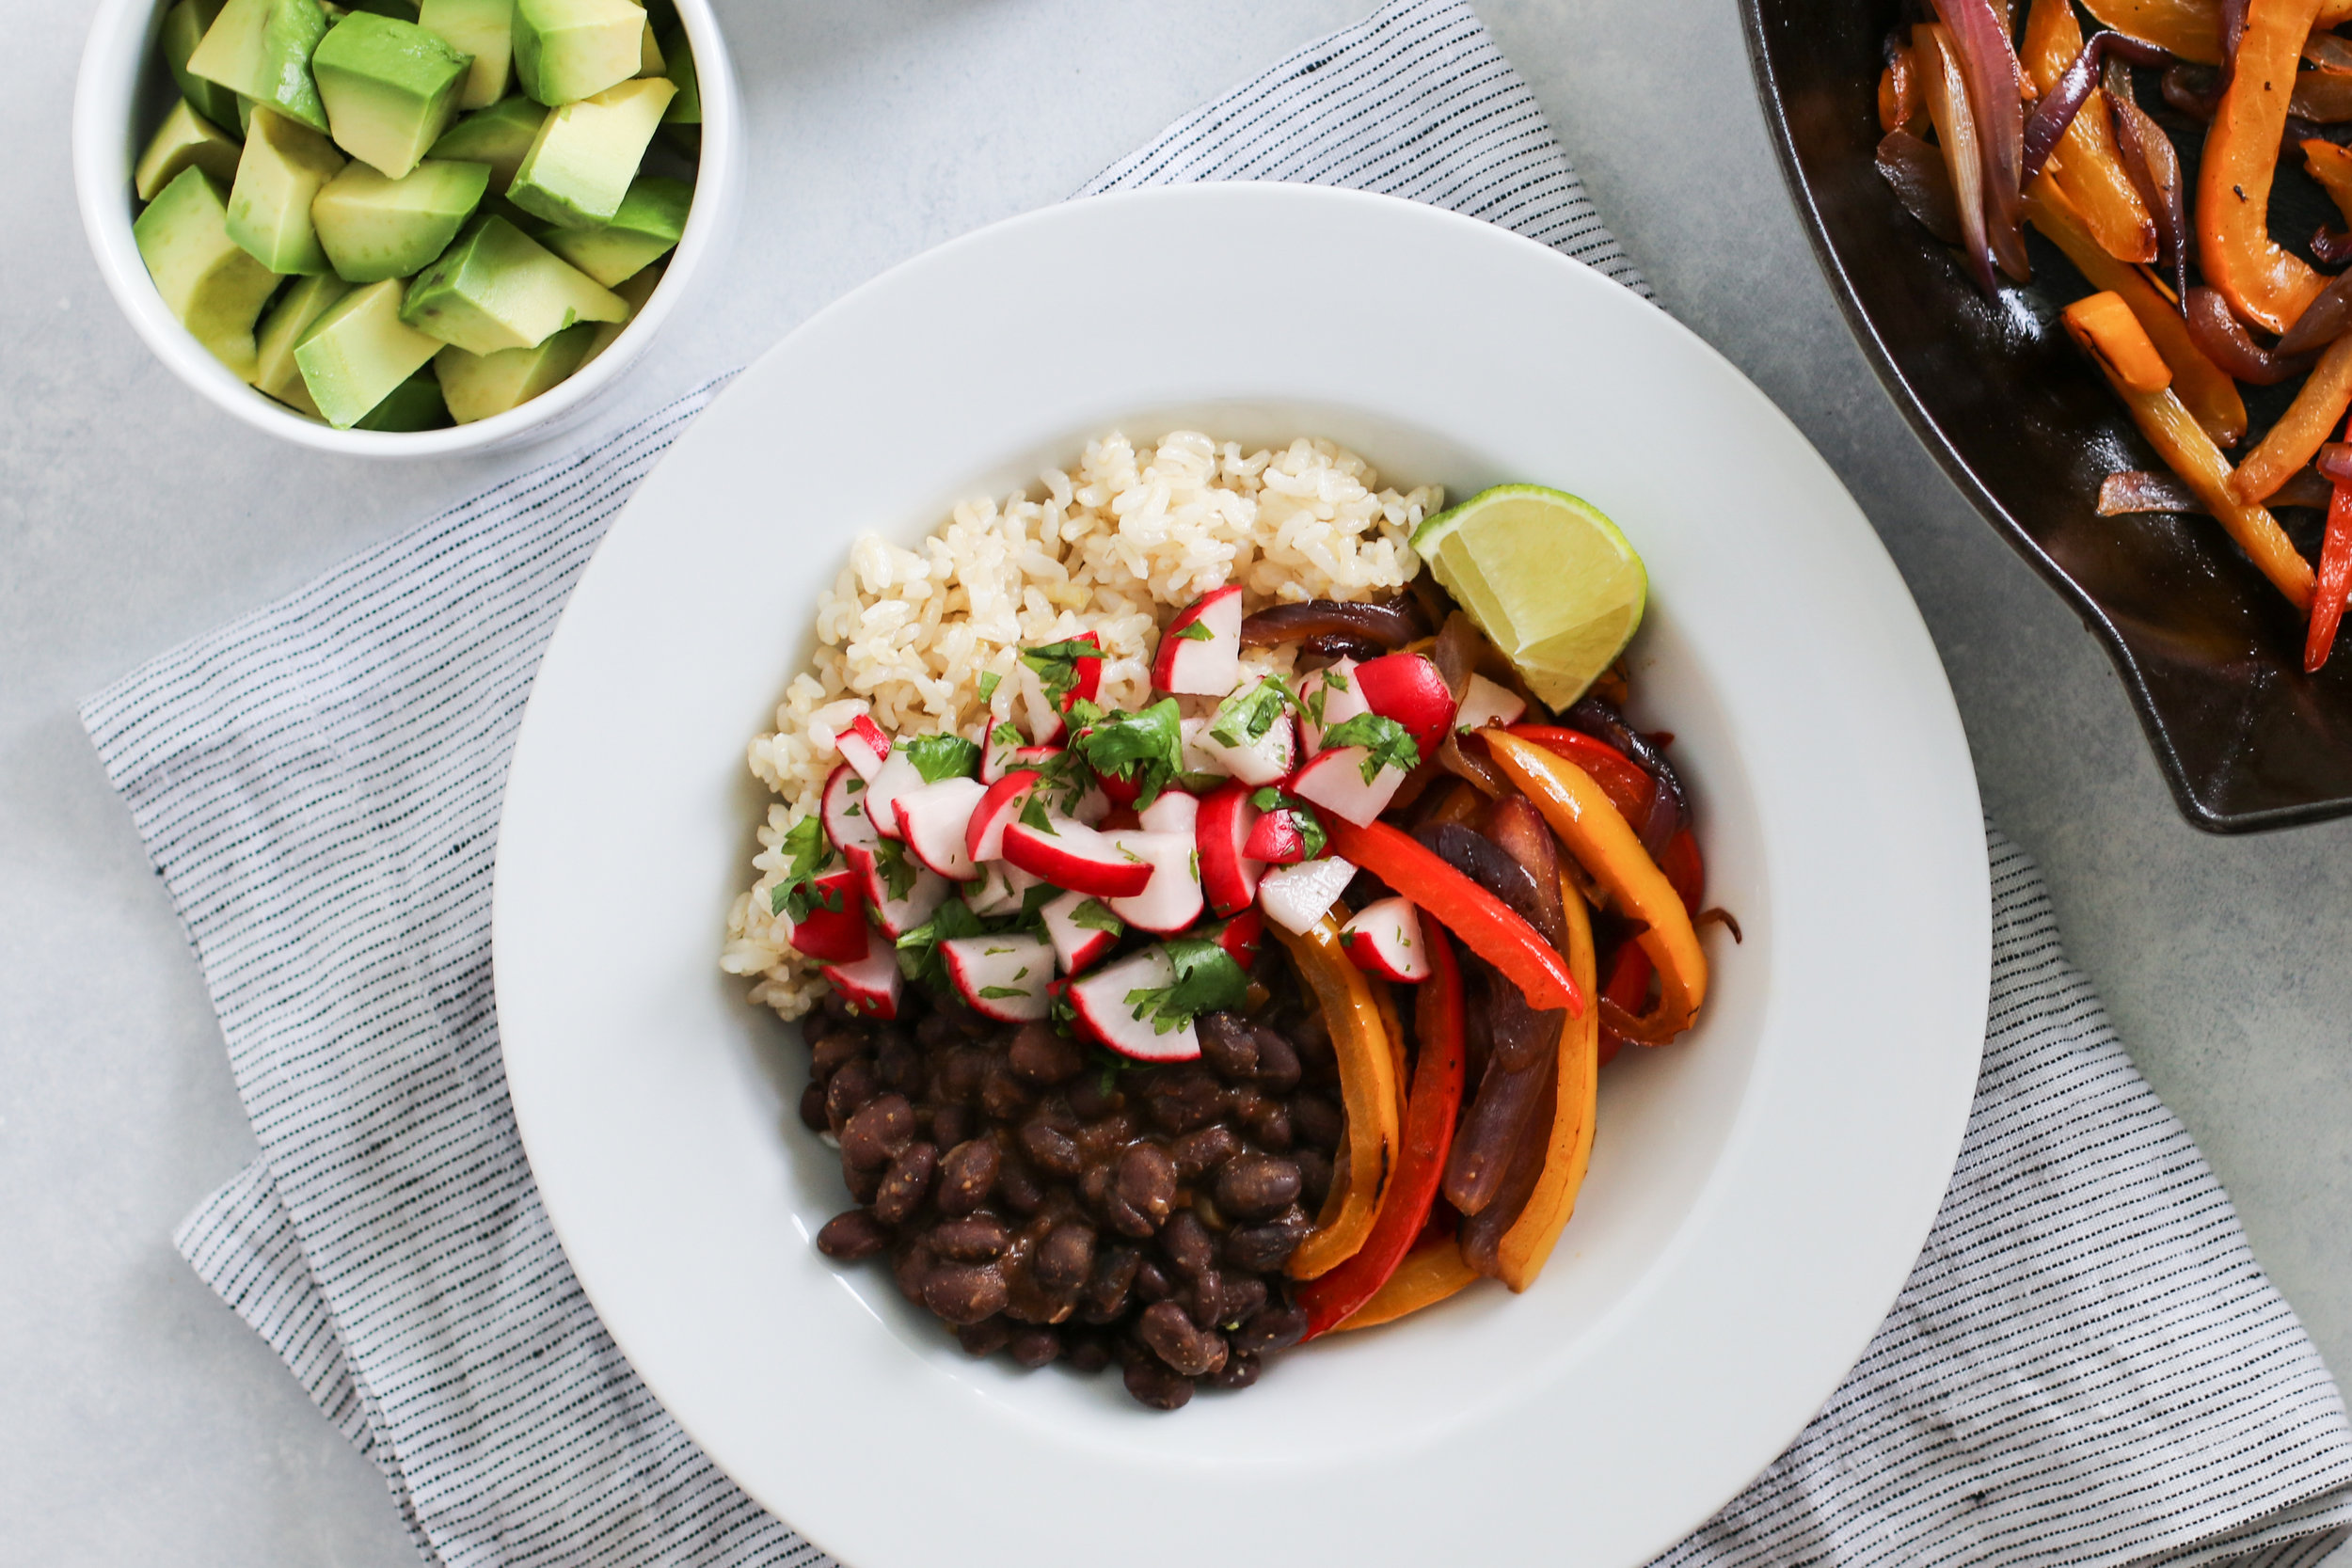 Chipotle Black Bean Fajita Bowls 3 copy.jpg